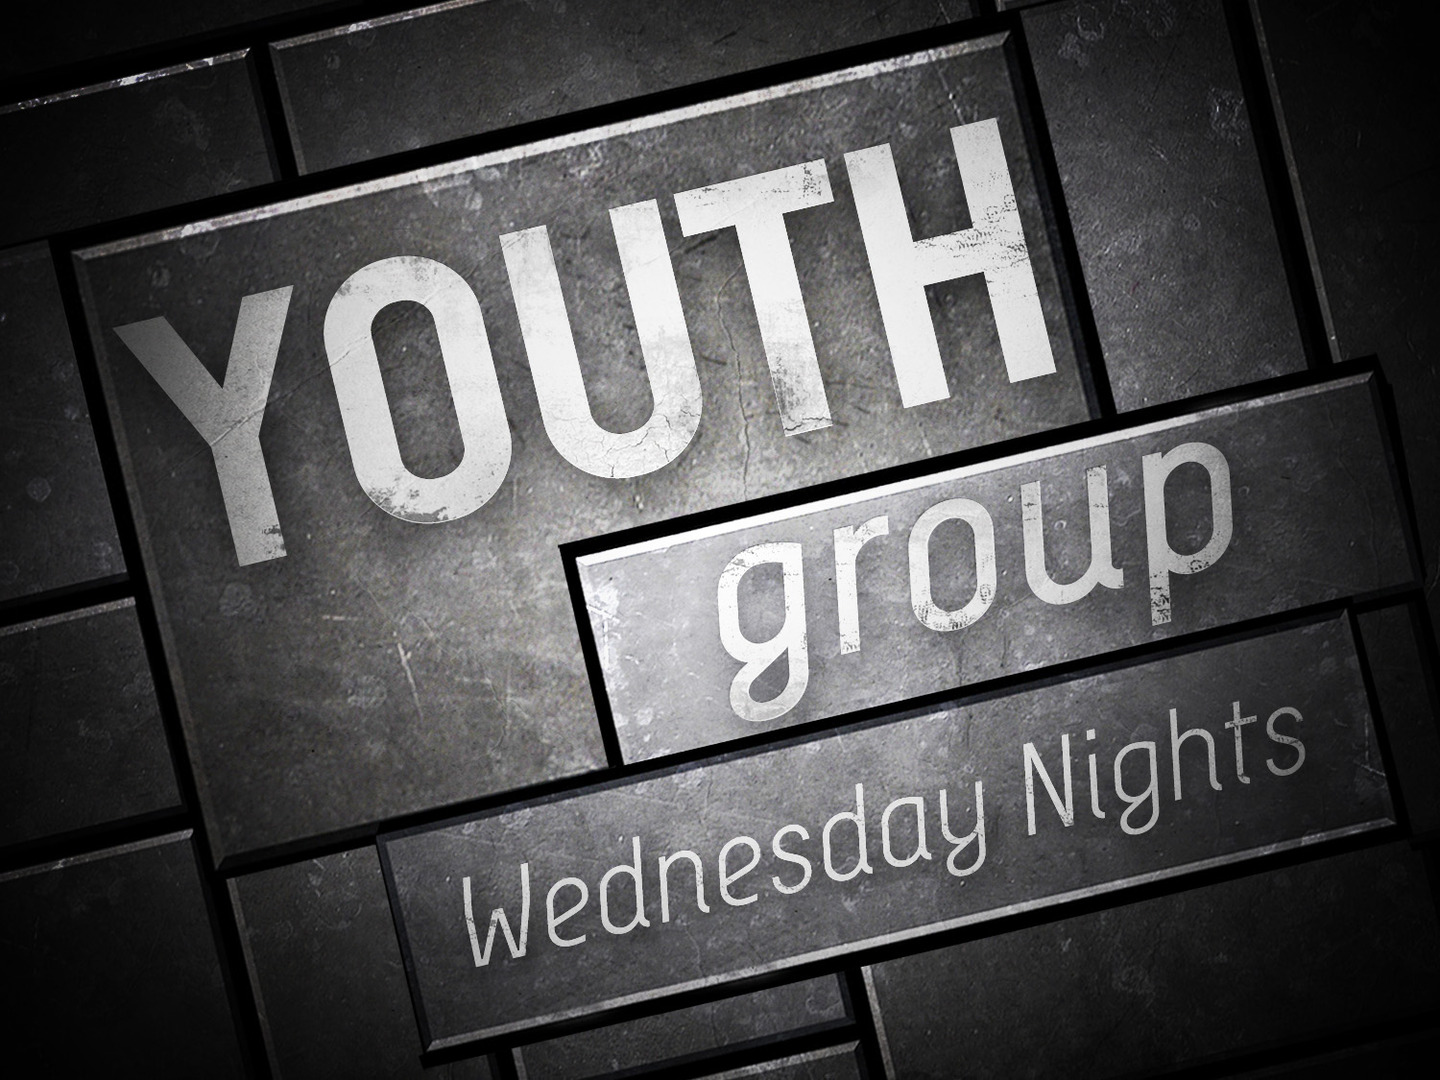 youth_group-title-1-Standard 4x3